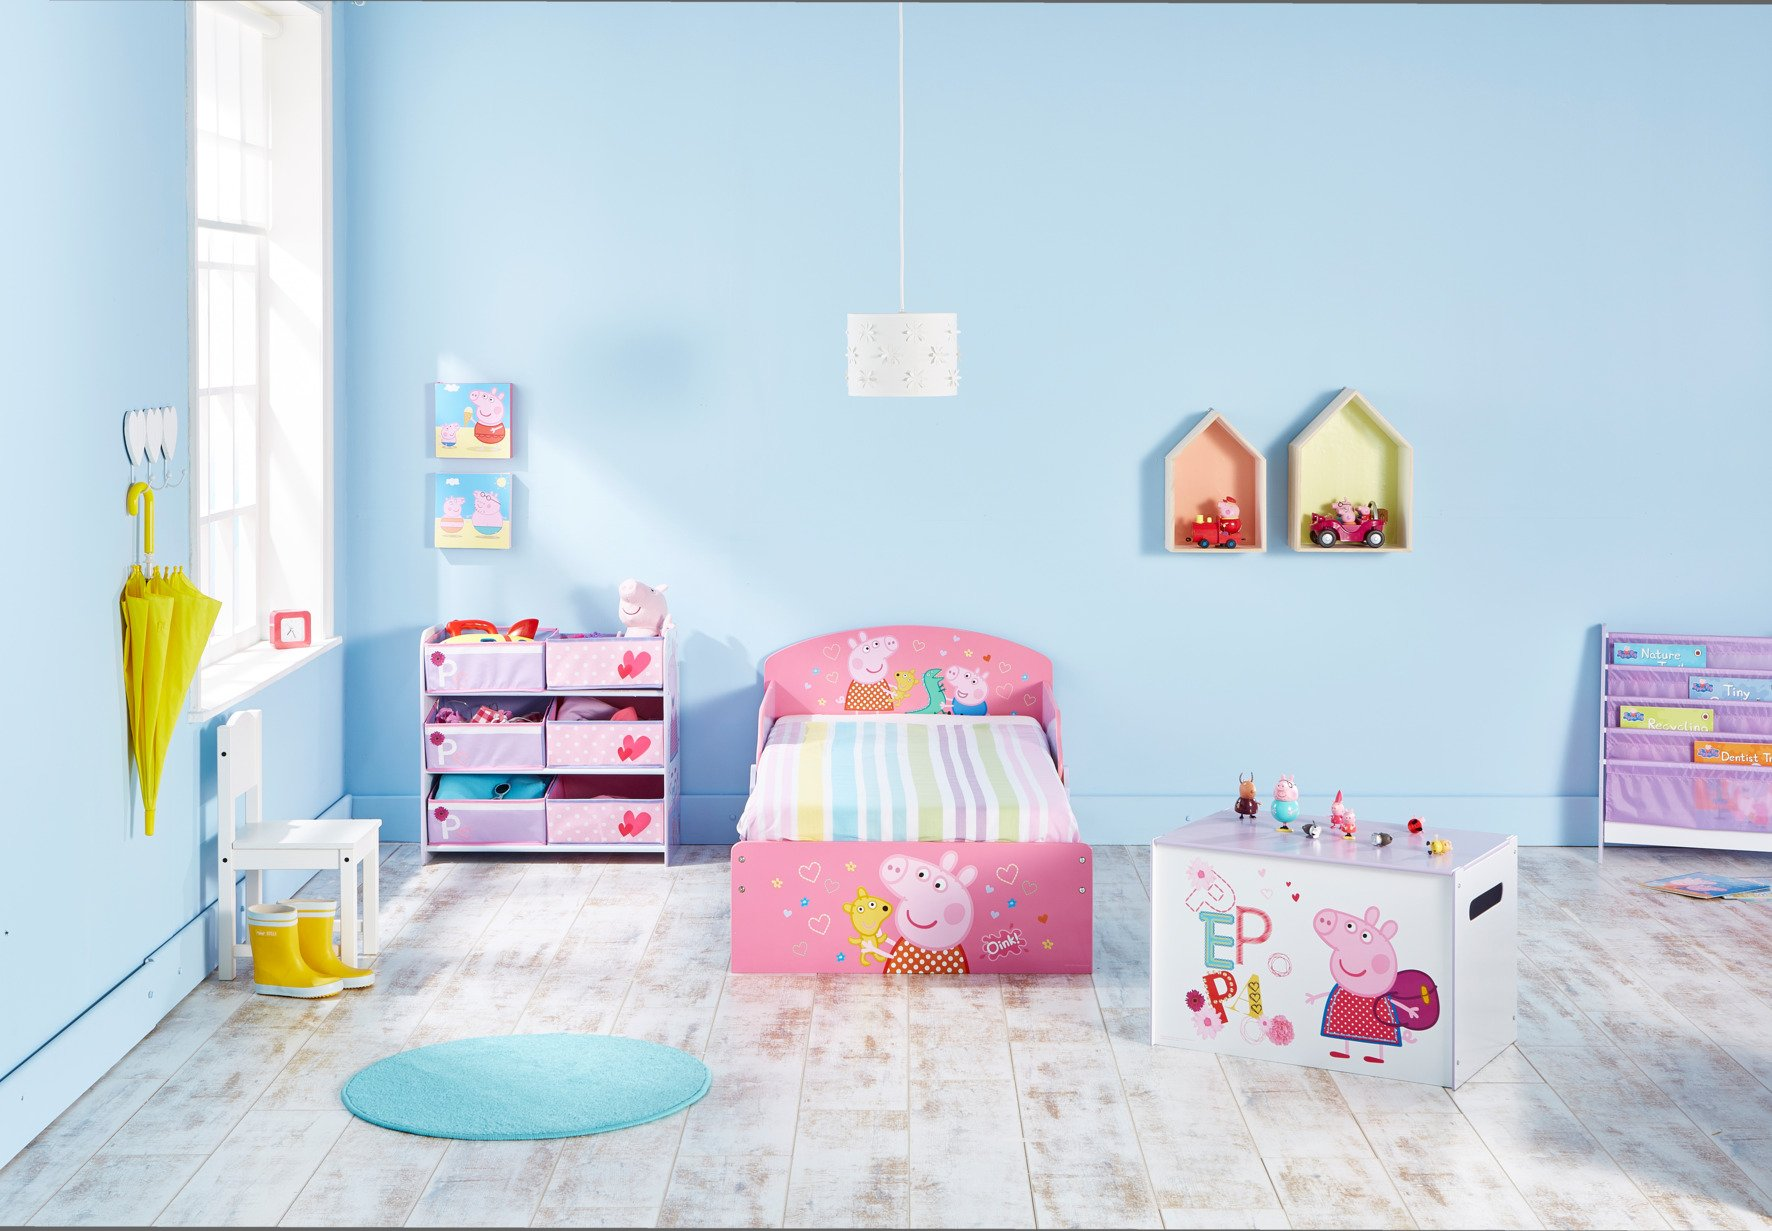 Peppa Pig Kids Toddler Bed by HelloHome Peppa Pig. Snuggle in after a day of play in this Peppa Pig Toddler Bed Perfect size for toddlers, low to the ground with protective and sturdy side guards to keep your little one safe and snug Fits a standard cot bed mattress size 140cm x 70cm, mattress not included. Part of the Peppa Pig bedroom furniture range from HelloHome 10